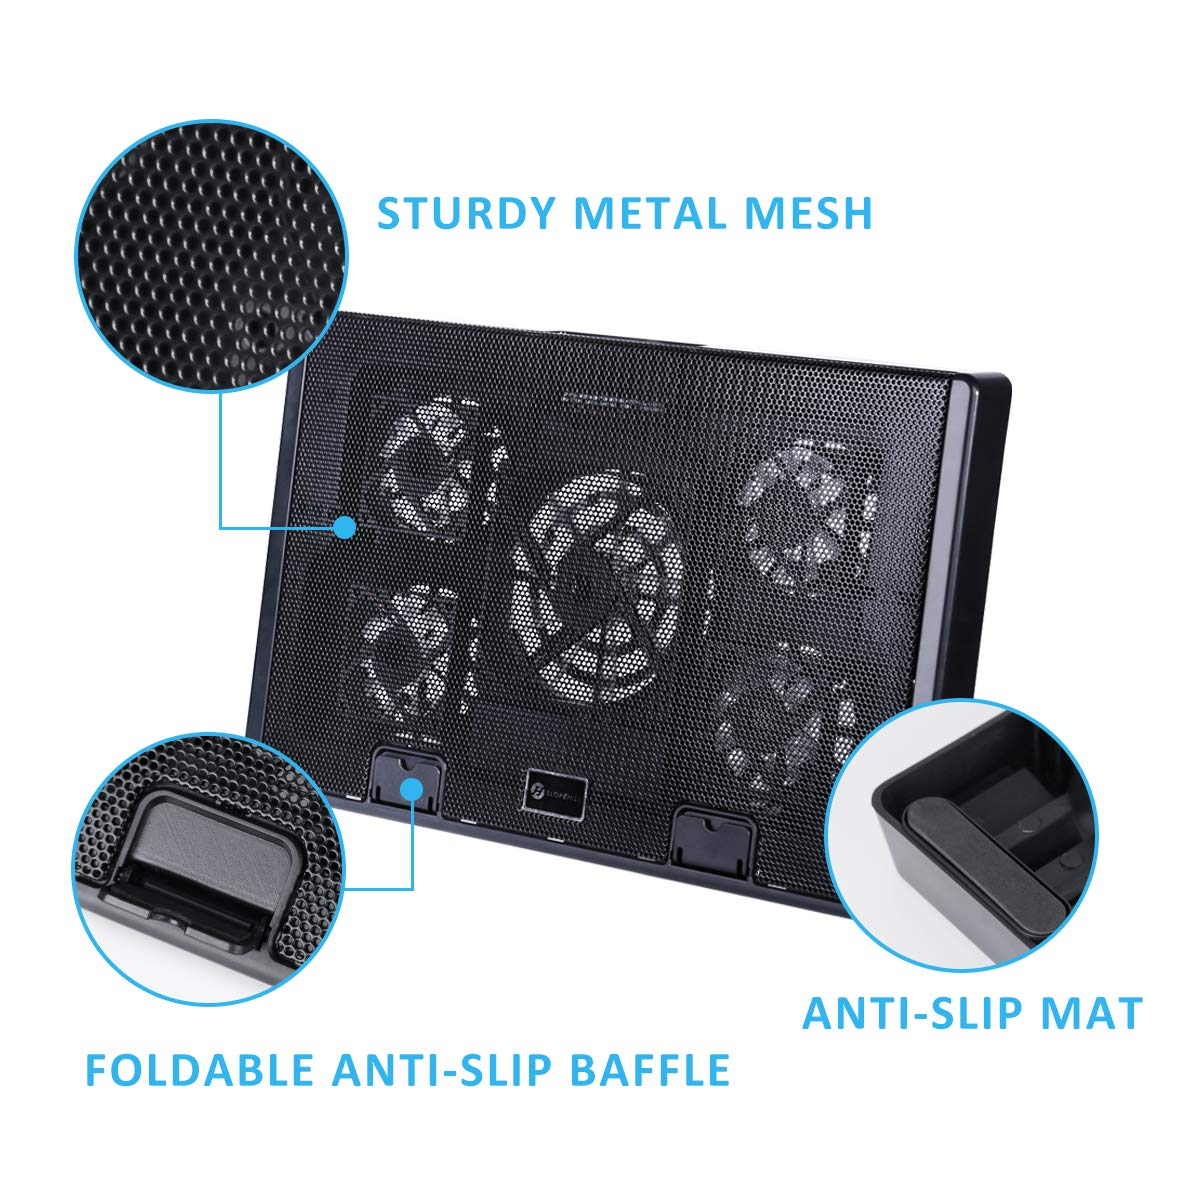 Slopehill Laptop Cooler Notebook Cooling Pad 5 Quiet Blue LED Fans with Powerful Air Flow Dual USB Ports Fits 10-17 Inch Laptop Adjustable Angled Stand